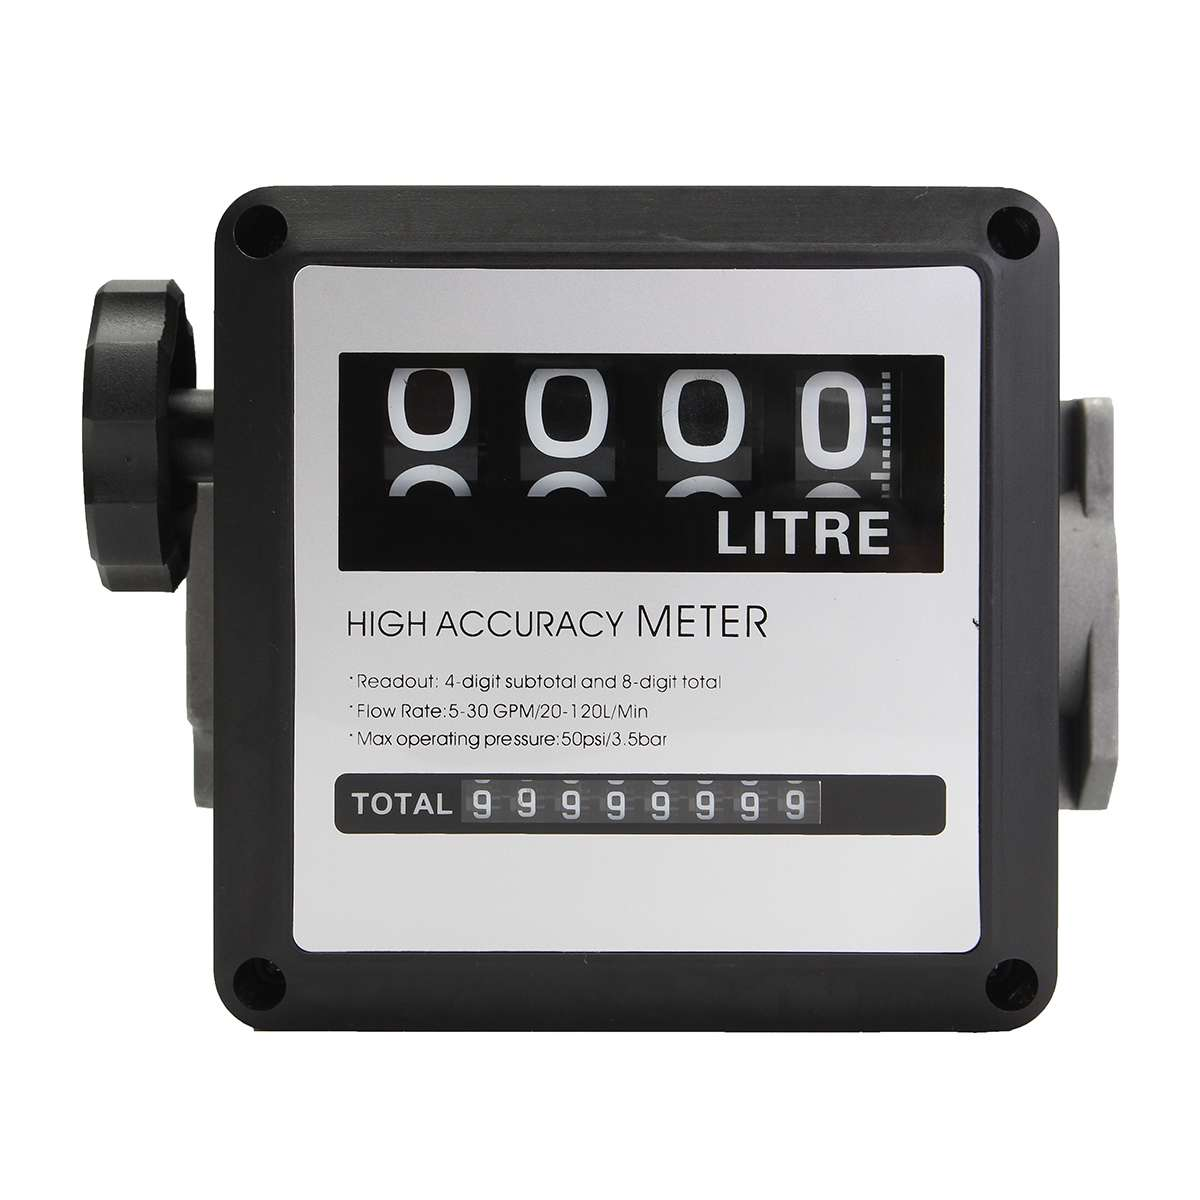 High Accuracy 4 Digital Diesel Gas Fuel Oil Flow Meter Dispenser Counter Gauge 5 30 GMP/20 120L/Min With Flexible Horizontal